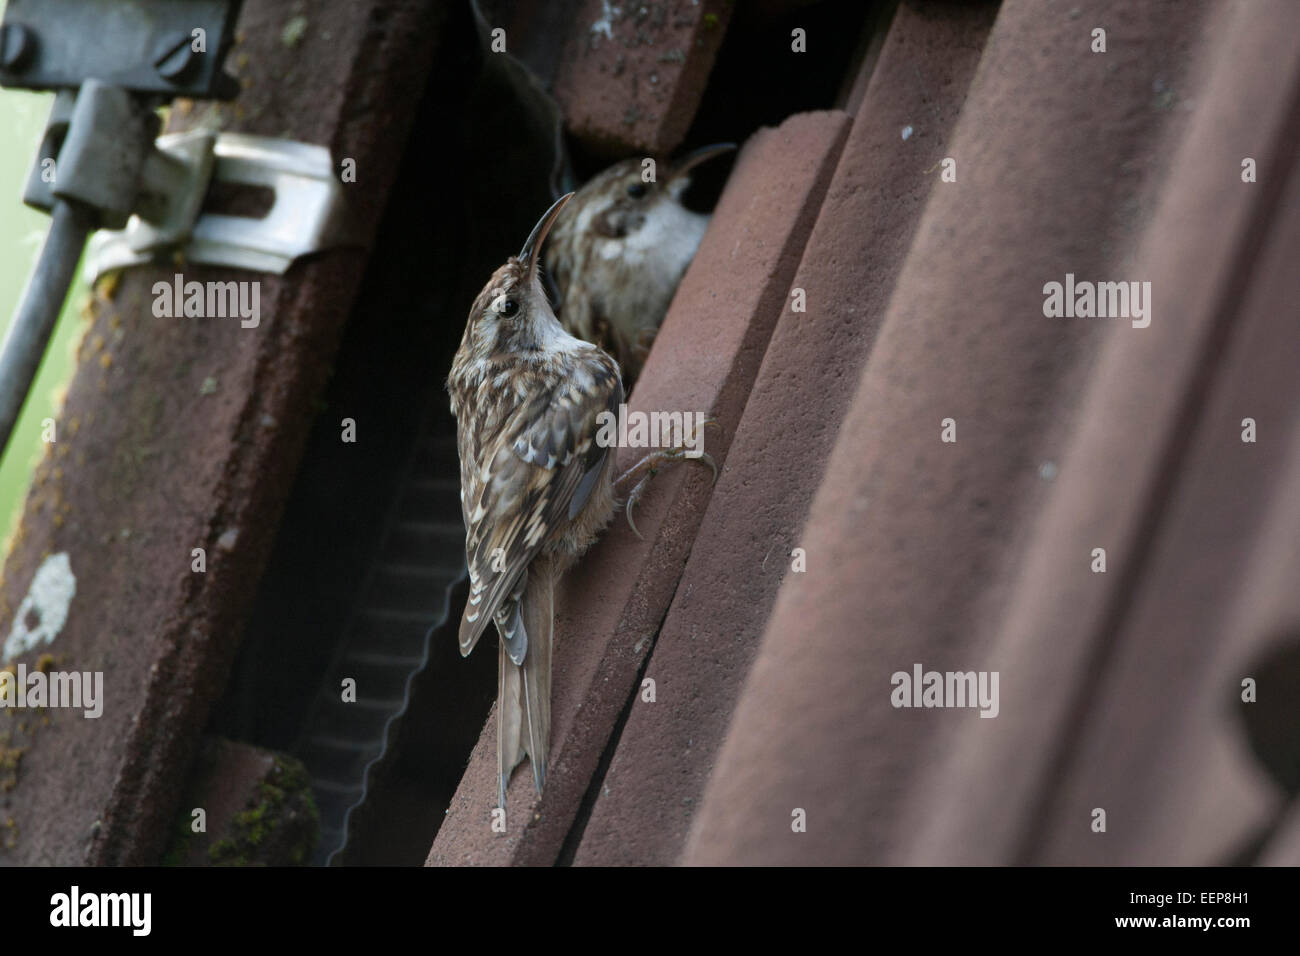 short-toed treecreeper [Certhia brachydactyla] refer the roof as nesting place - Stock Image